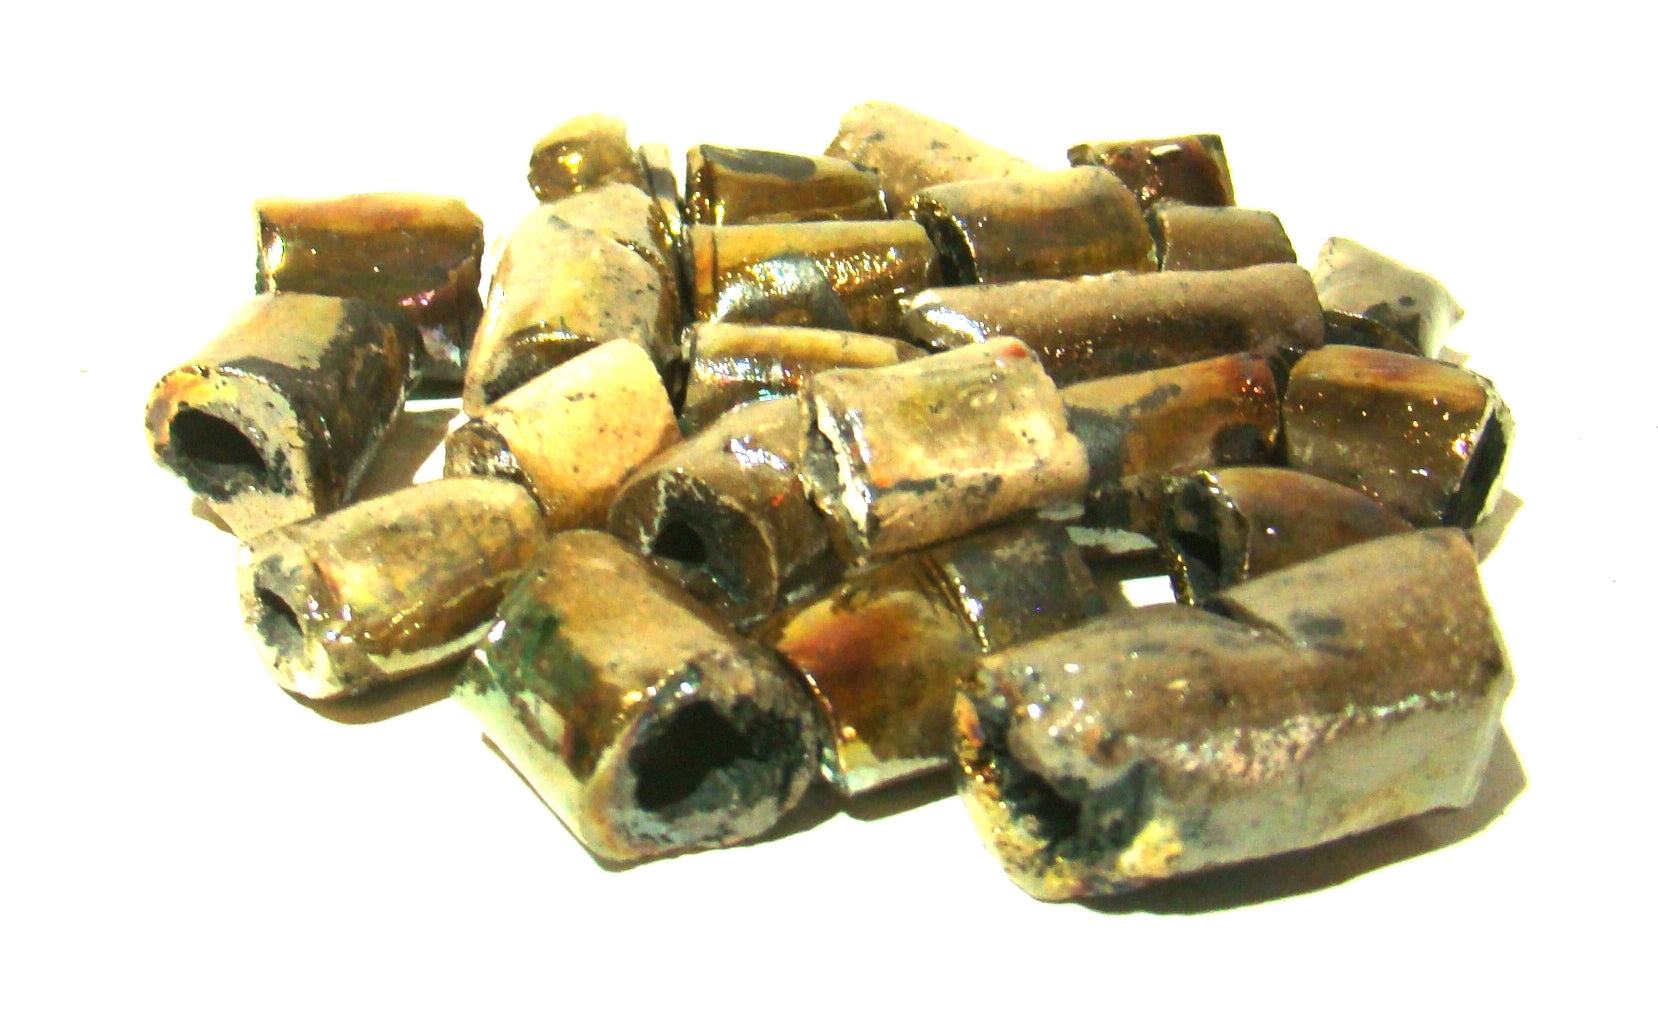 Iridescent gold and silver raku beads Most  beads have smooth surface Size range 1/4 thru 1 inch 20 irregular beads @ 5.00 a bag. Perfect for any creative DIY project